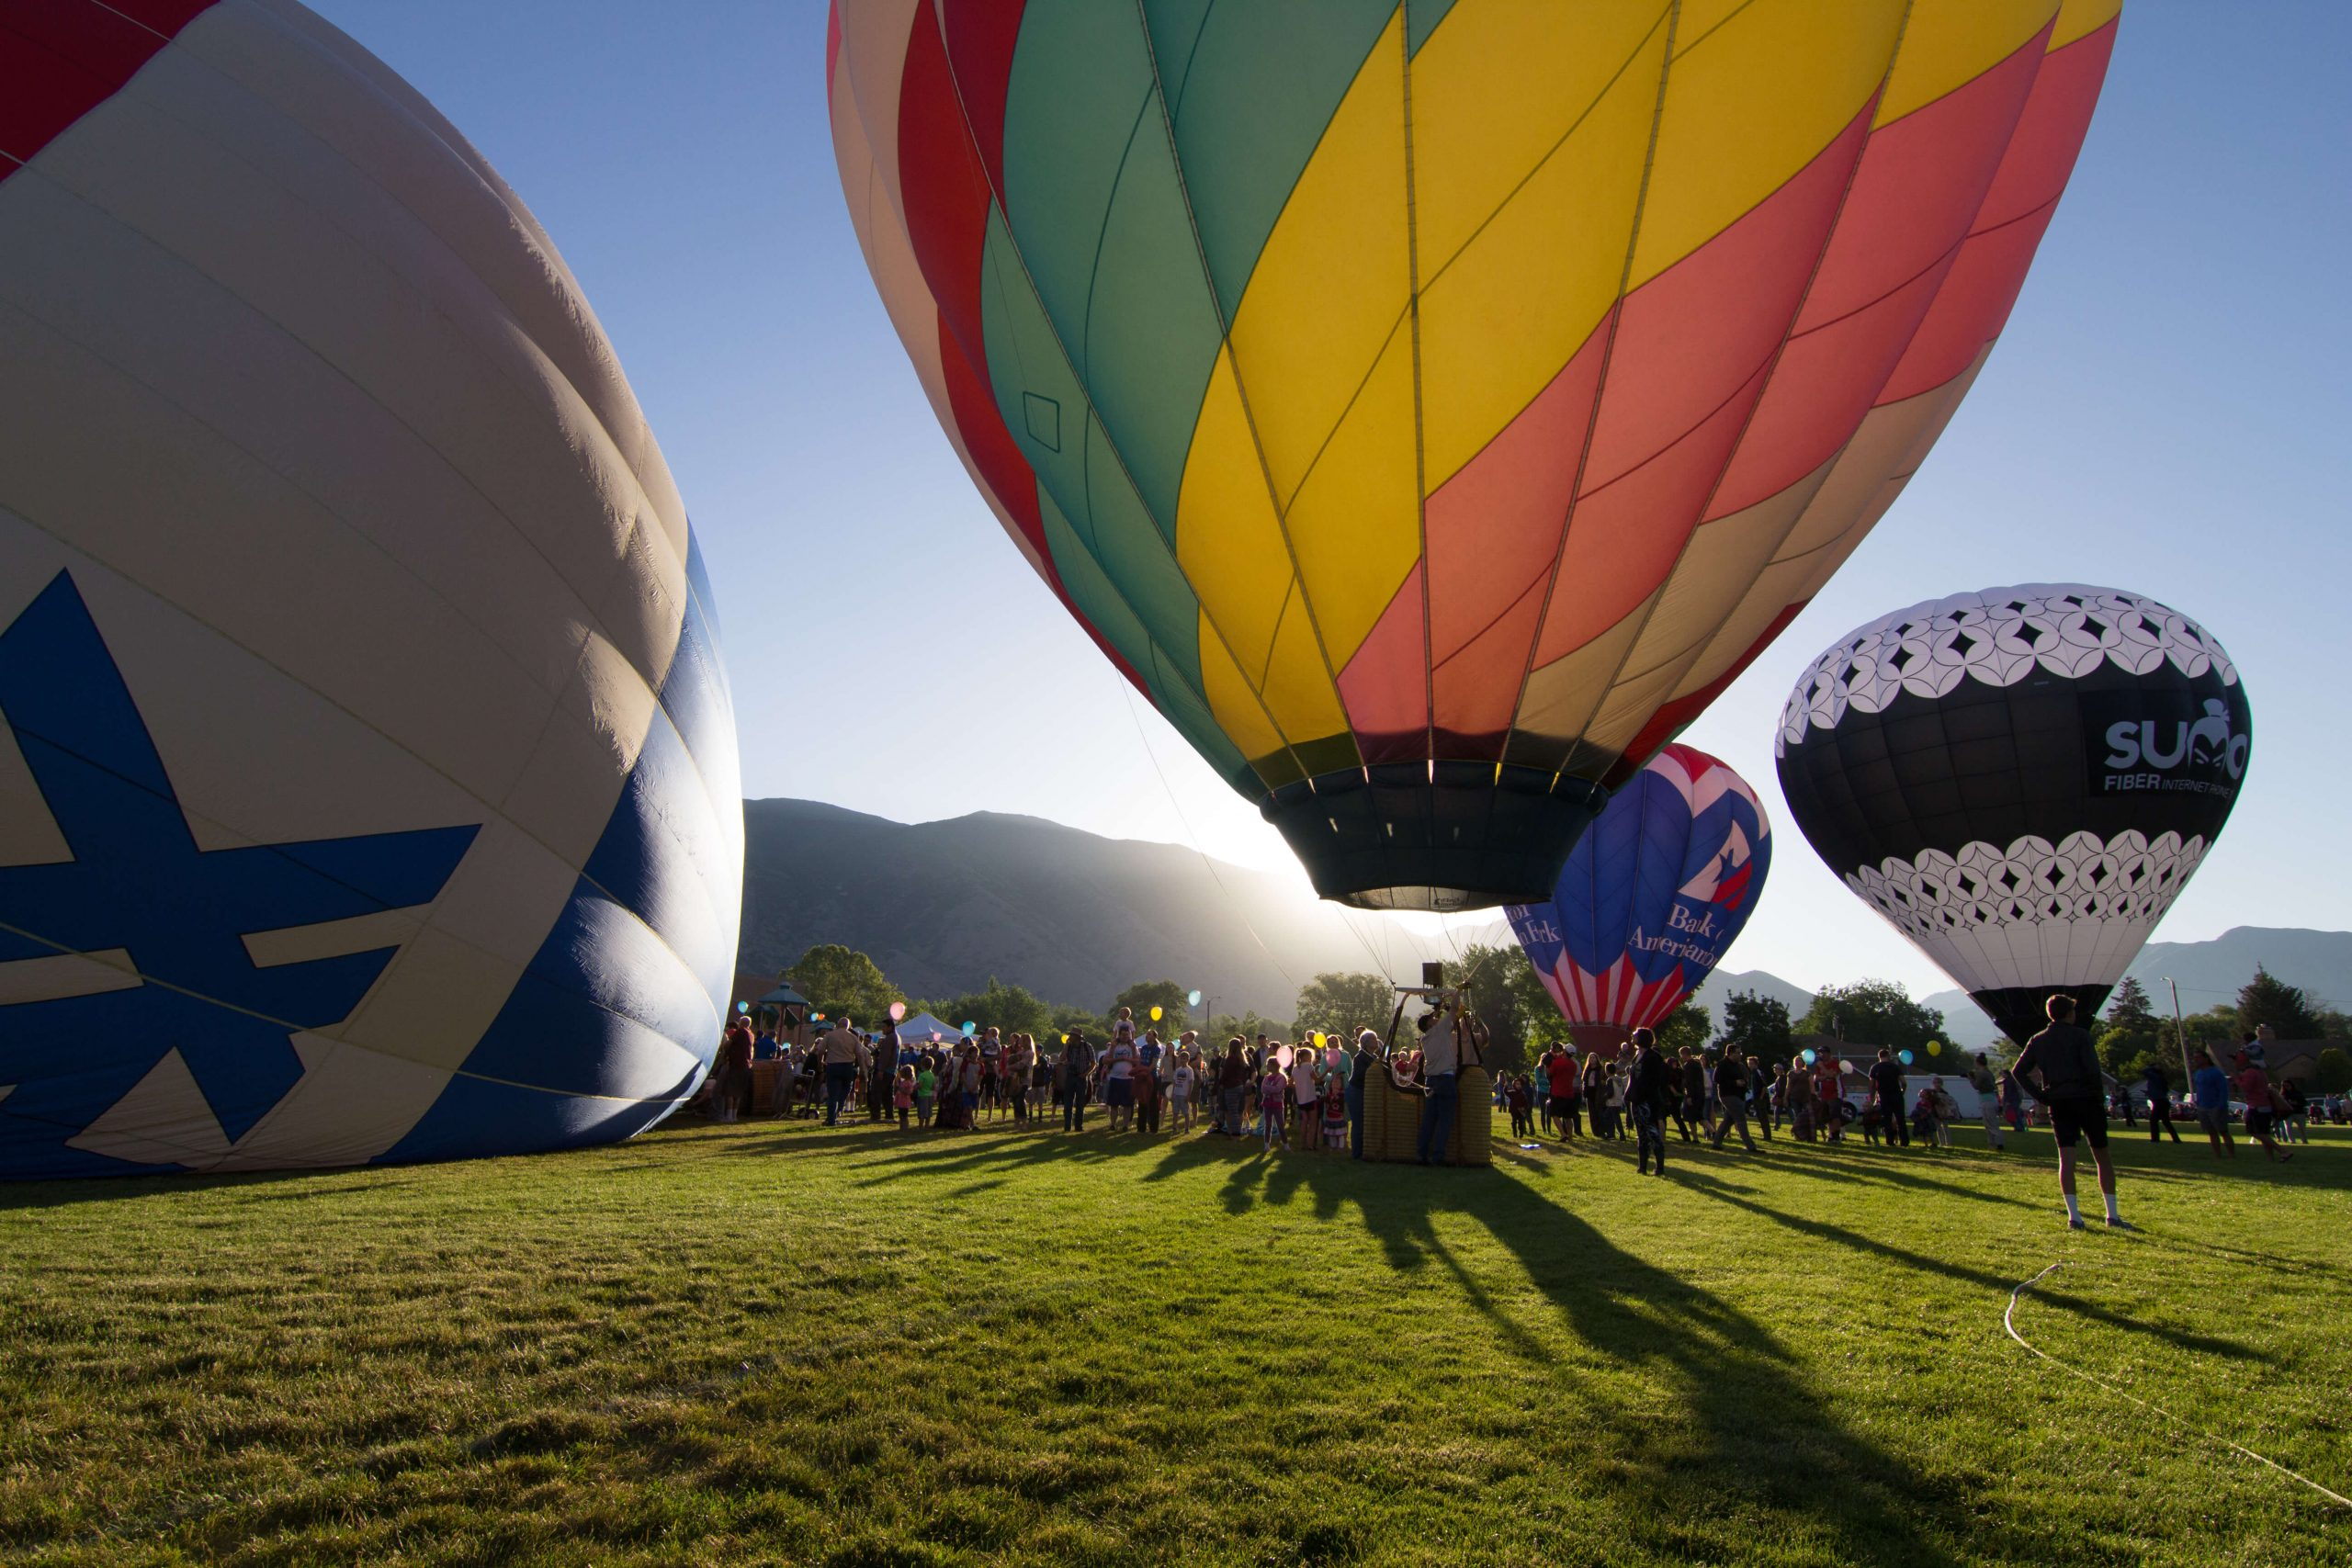 Balloon Fest 6:30 am @ Cherry Creek Elementary